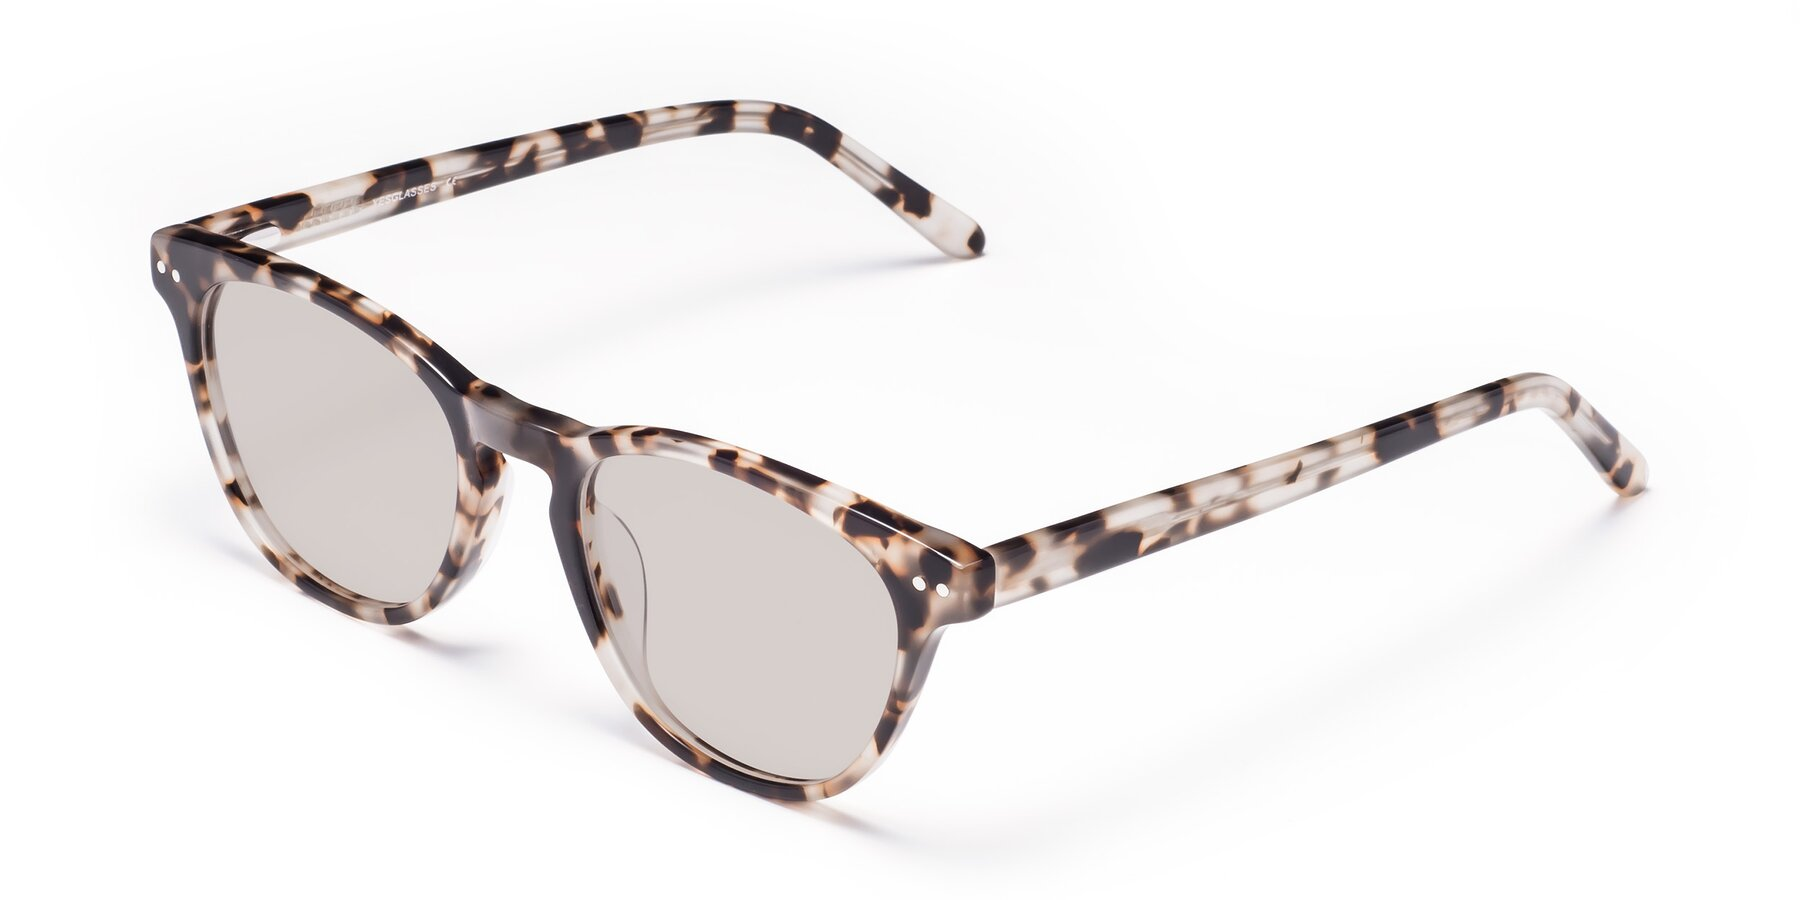 Angle of Blaze in Tortoise with Light Brown Tinted Lenses